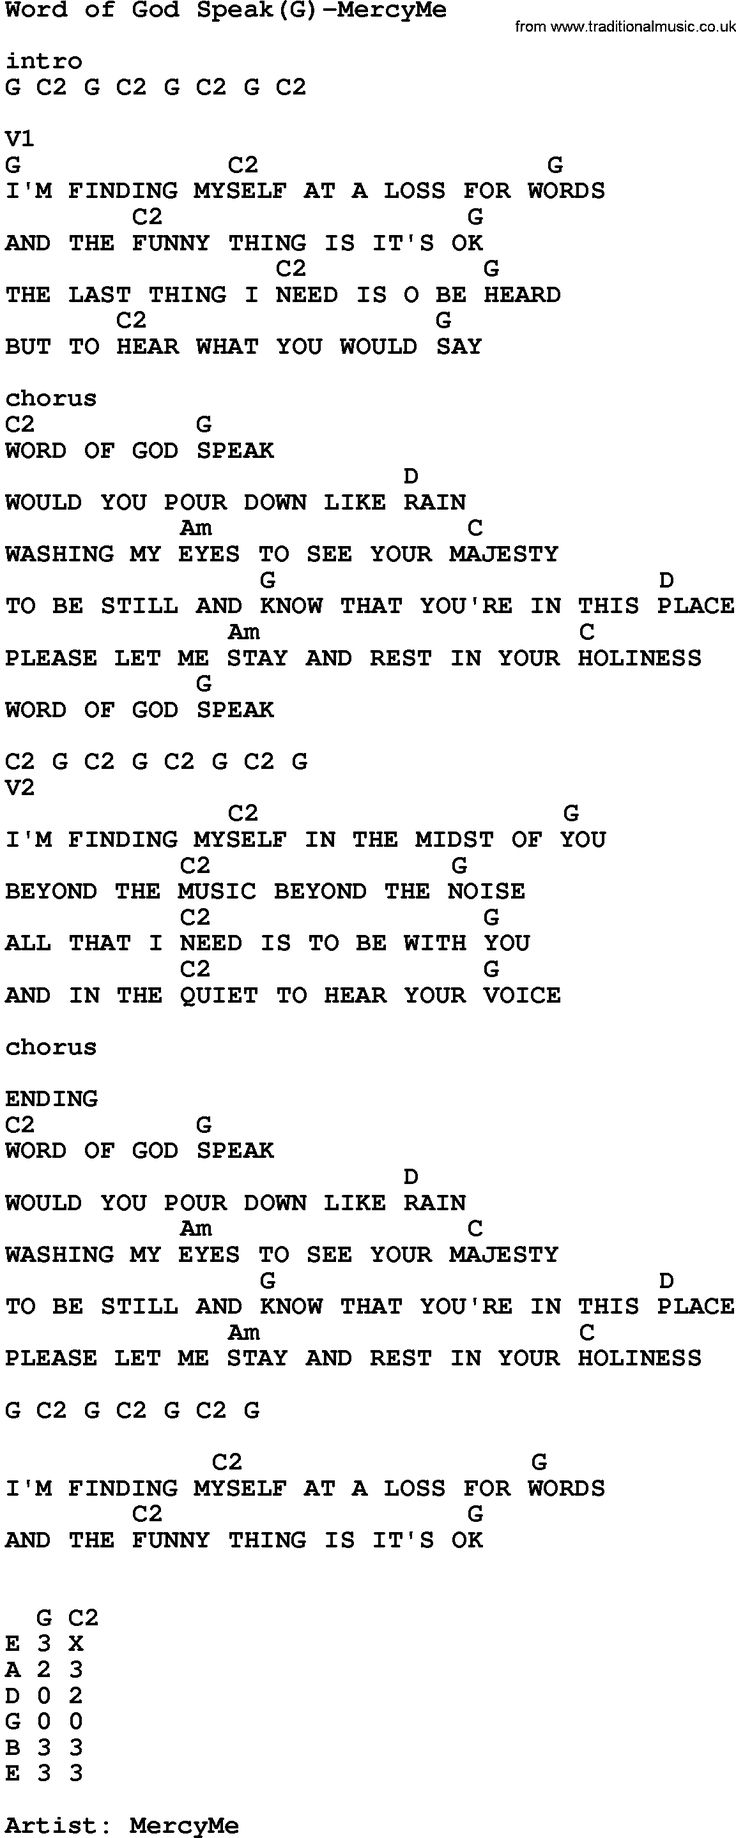 Pop song guitar chords choice image guitar chords examples yahweh guitar chords images guitar chords examples i will worship you in the beauty of holiness hexwebz Choice Image